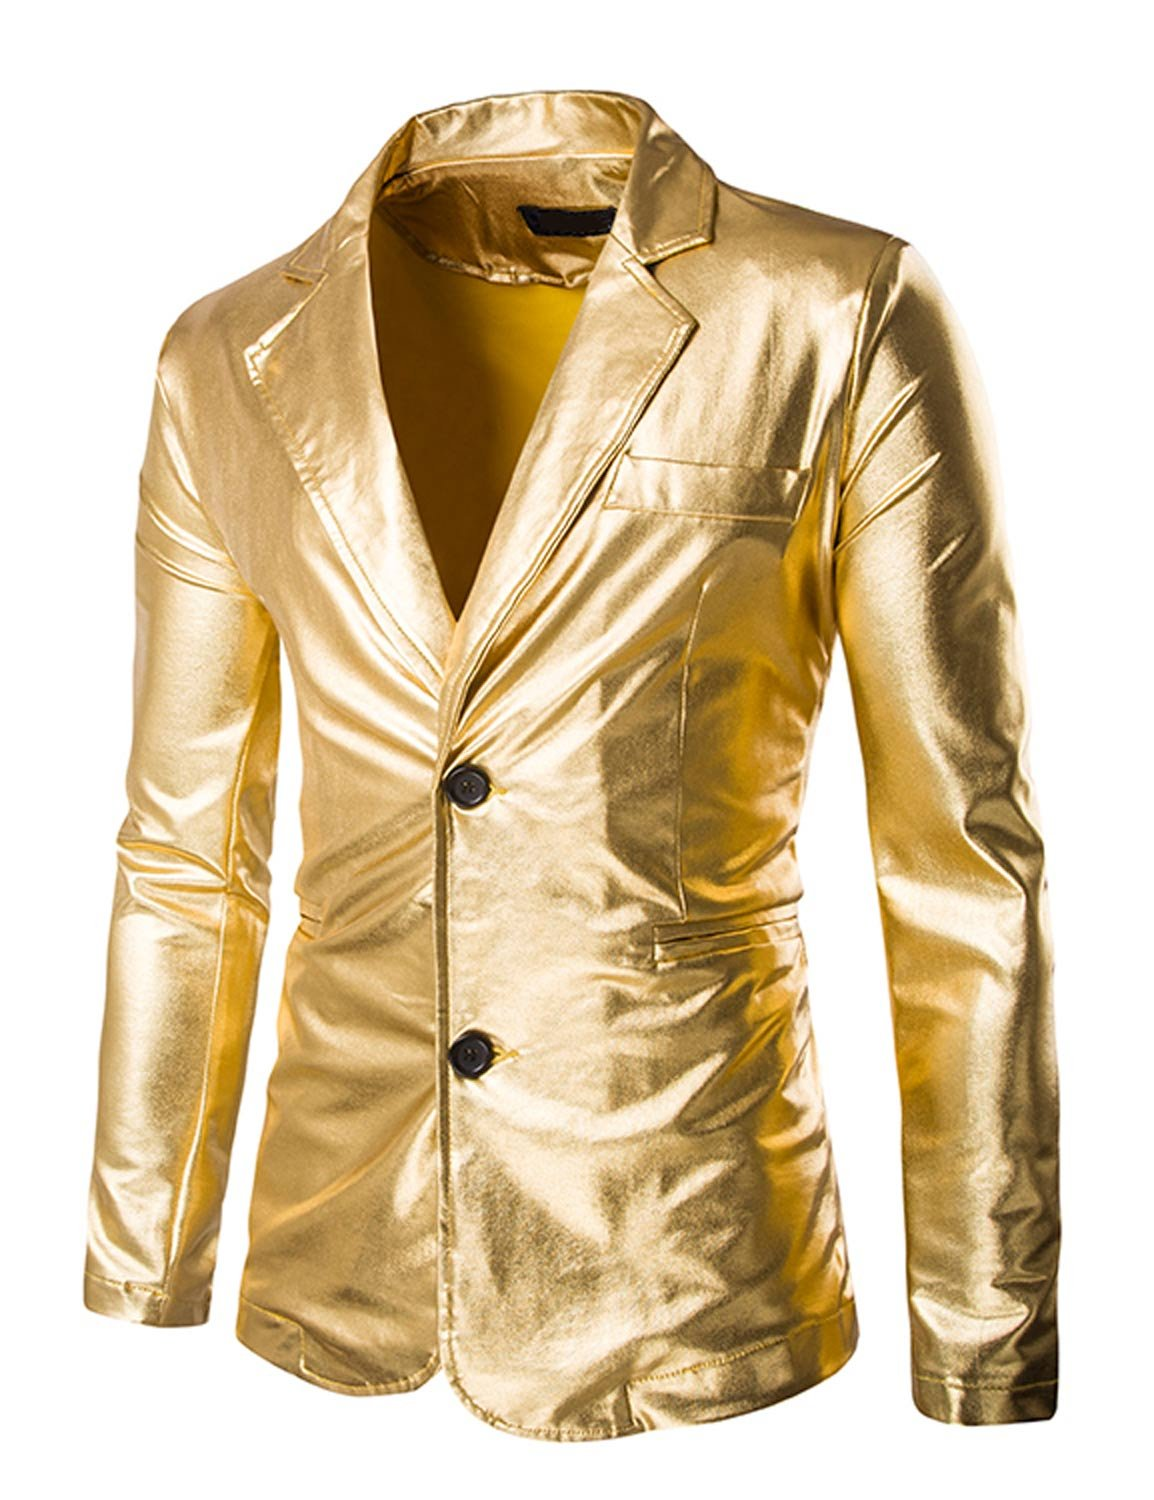 ZEROYAA Mens Geek Design Metallic Silver Blazer/Party Suit Jacket Gold XX-Large,US L by ZEROYAA